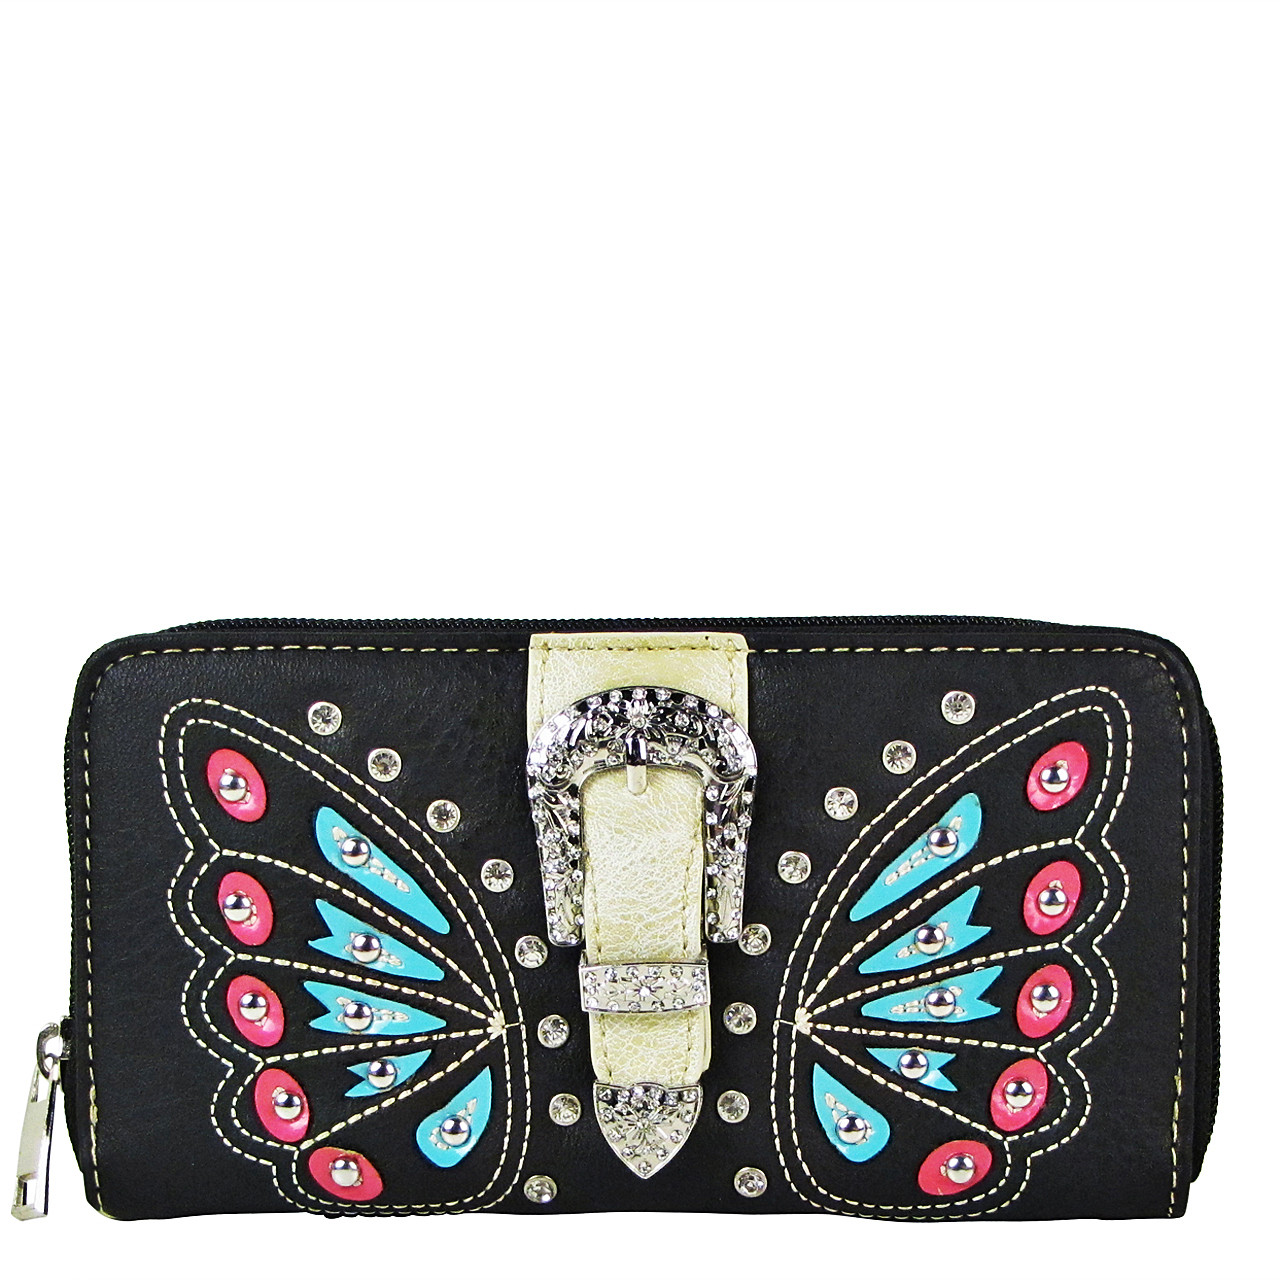 BLACK BUTTERFLY RHINESTONE BUCKLE LOOK ZIPPER WALLET CB3-1211BLK